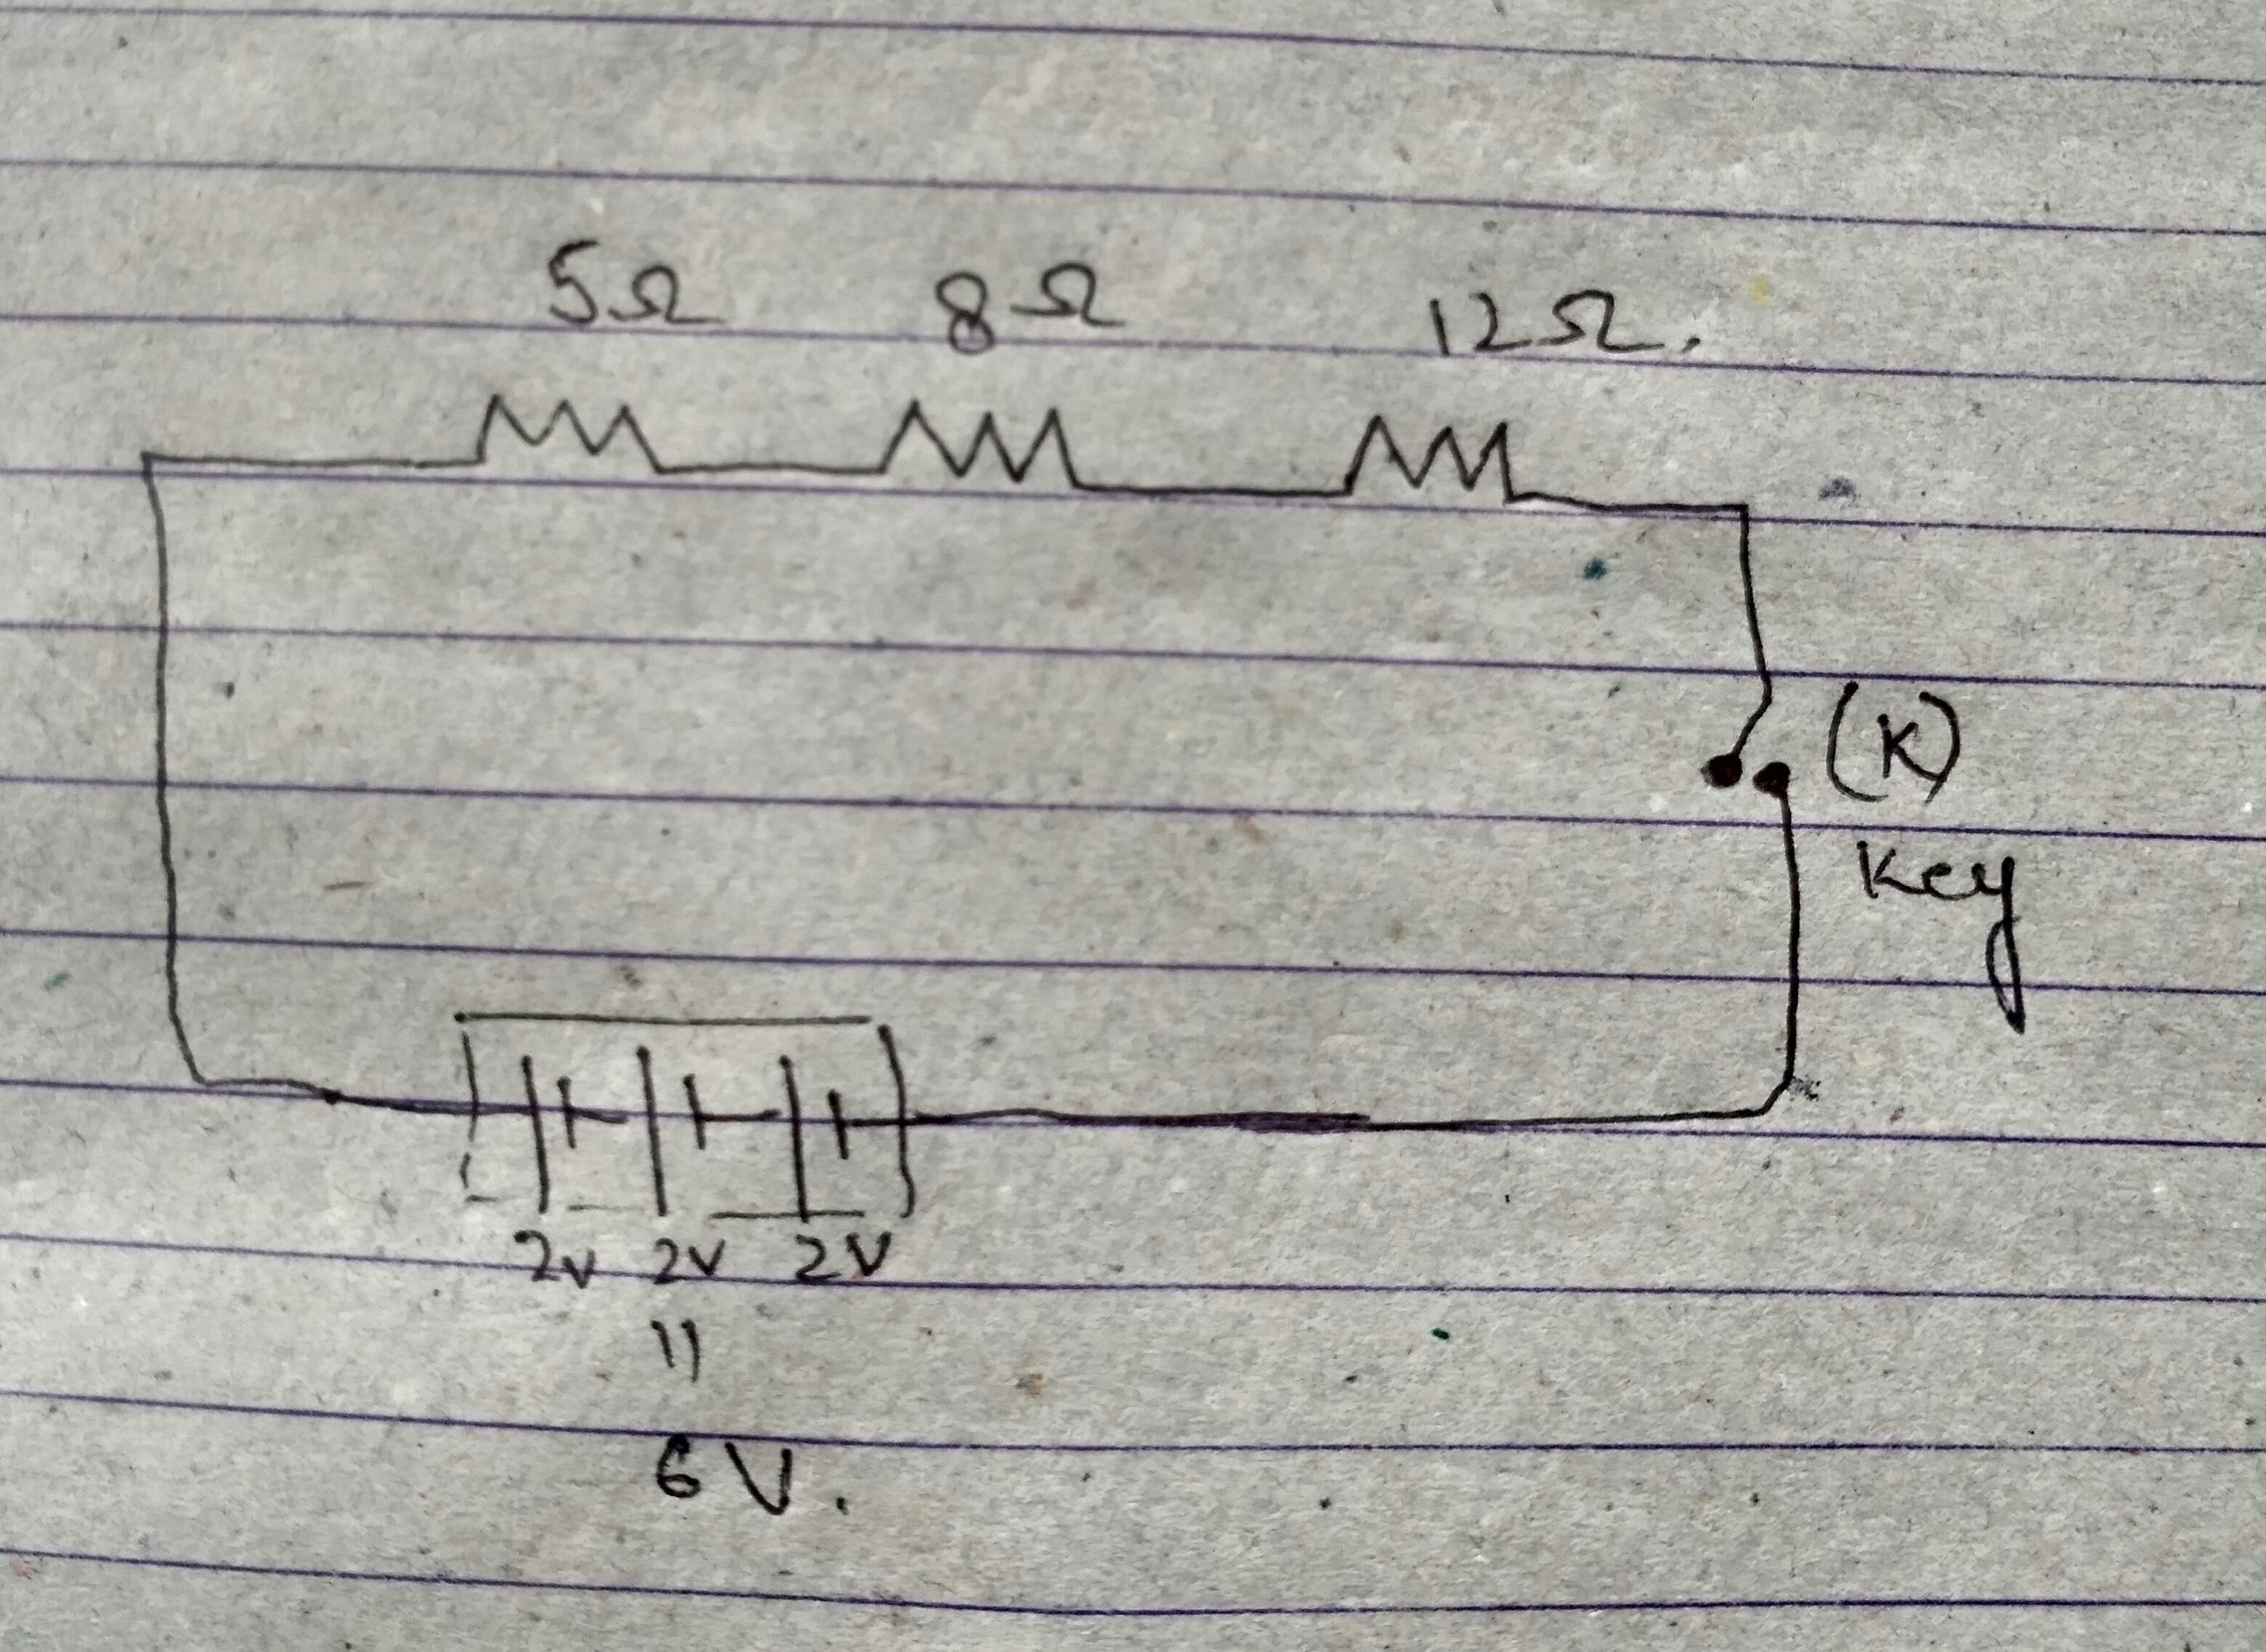 Draw A Schematic Diagram Of A Circuit Consisting Of A